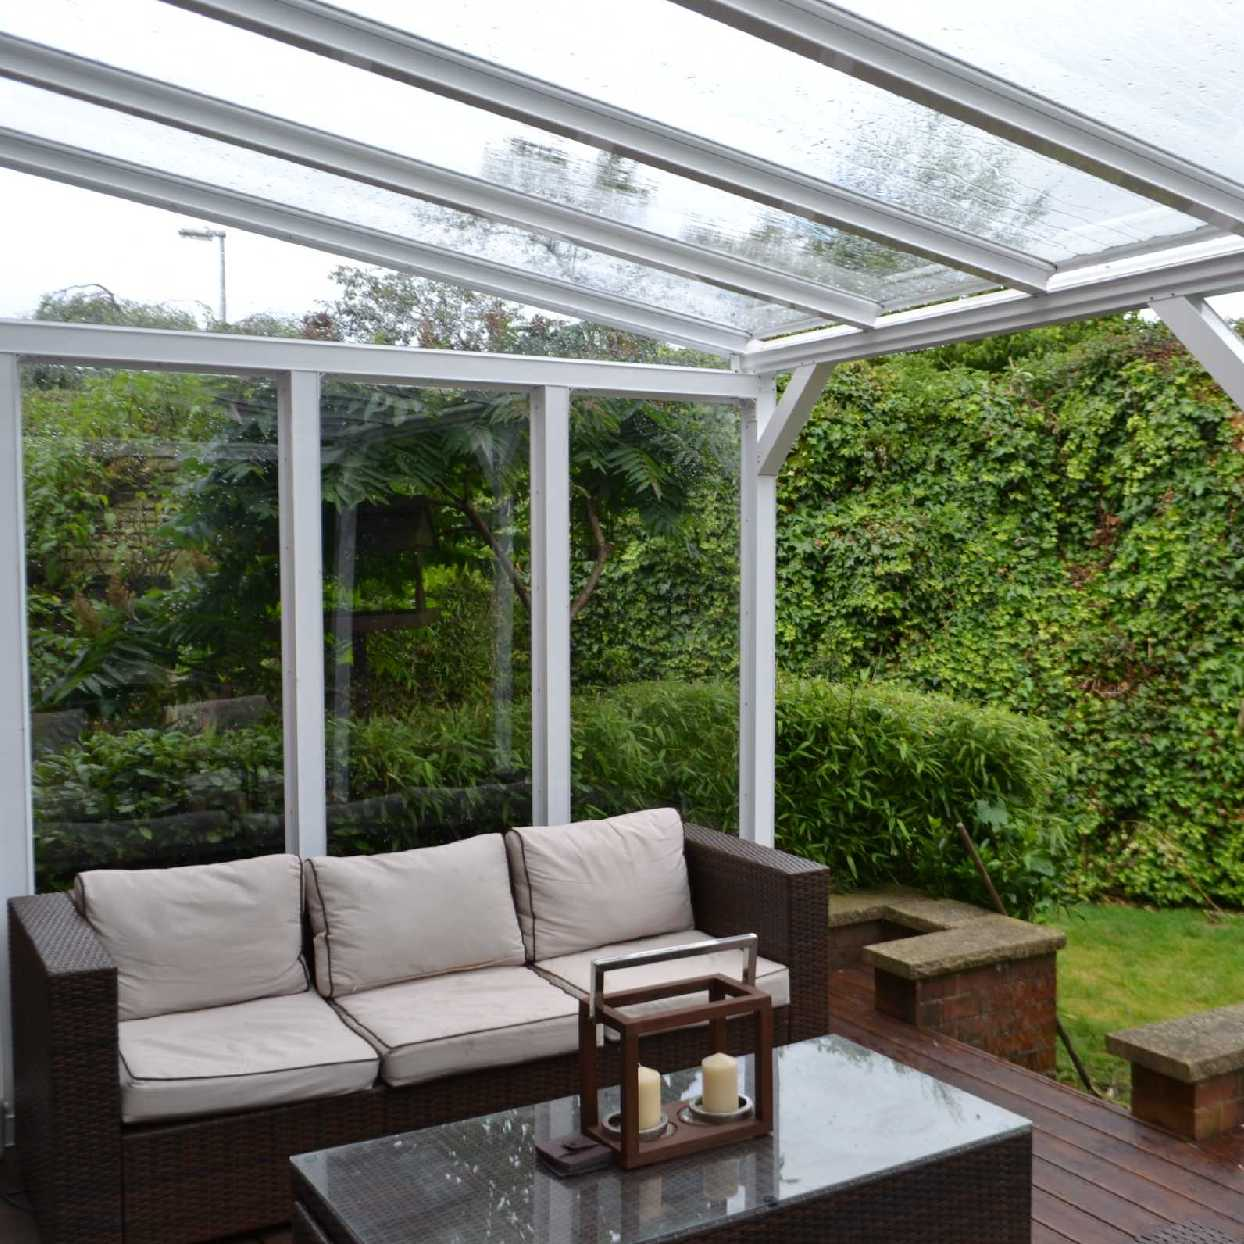 Great selection of Omega Smart White Lean-To Canopy with 16mm Polycarbonate Glazing - 5.9m (W) x 4.5m (P), (3) Supporting Posts